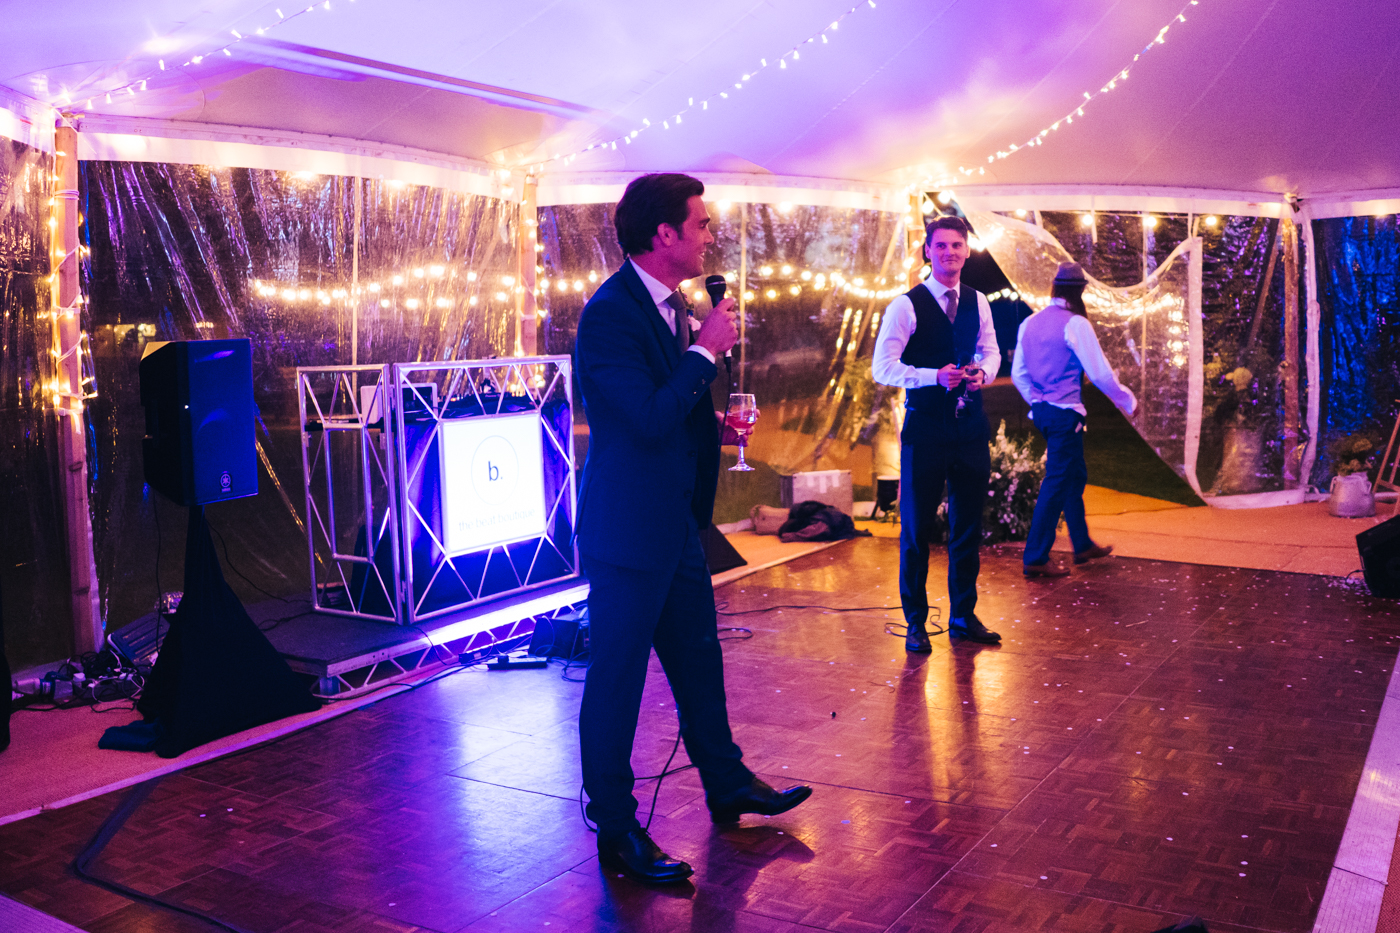 north-yorkshire-marquee-wedding-photographer-teesside-north-east-wedding-photography-0091.jpg